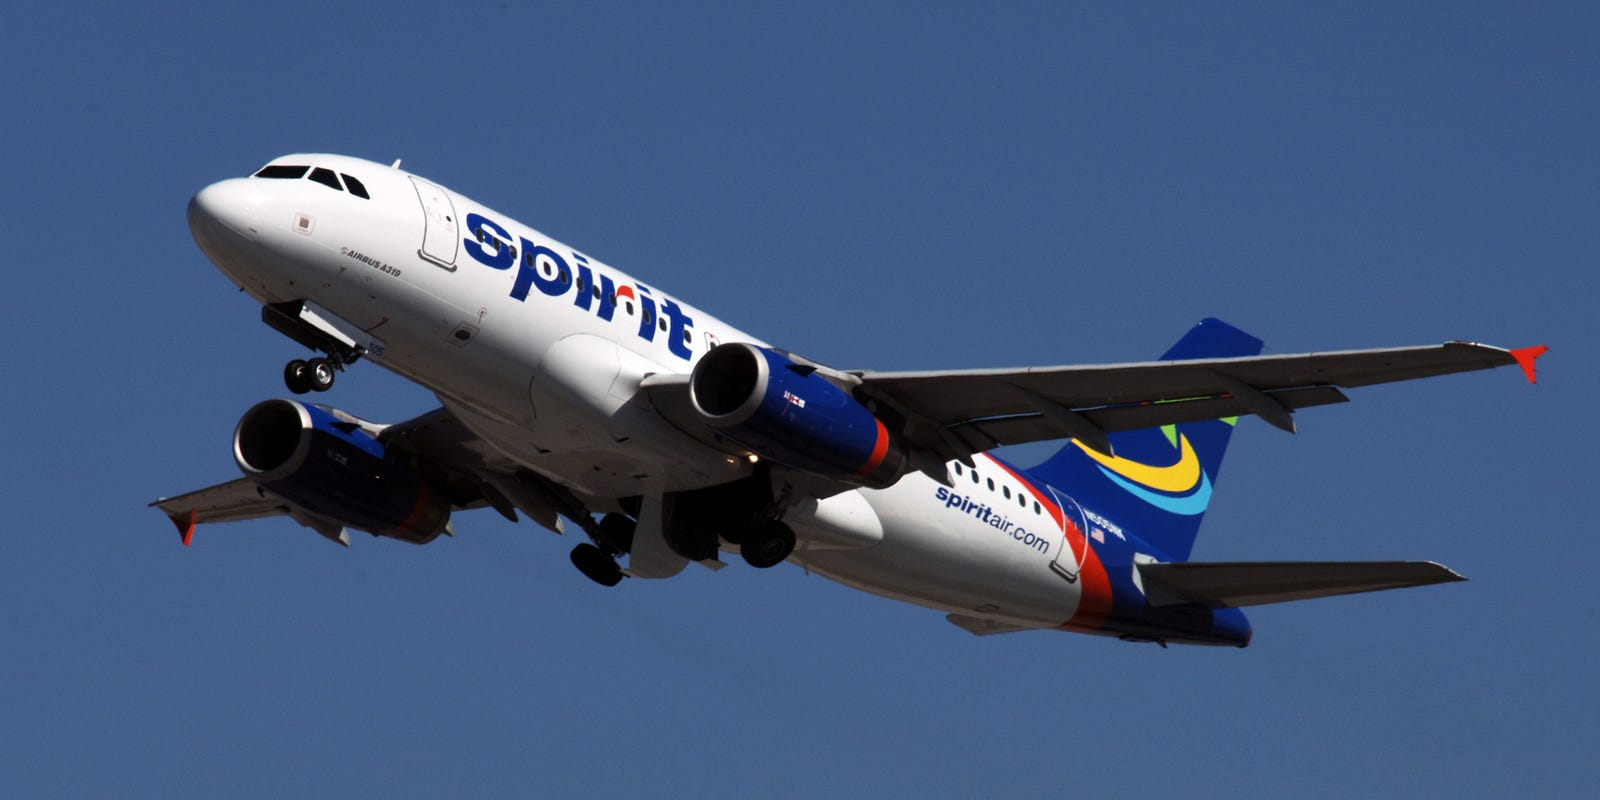 Reports: Woman died in July from COVID-19 while on flight from Las Vegas to Texas